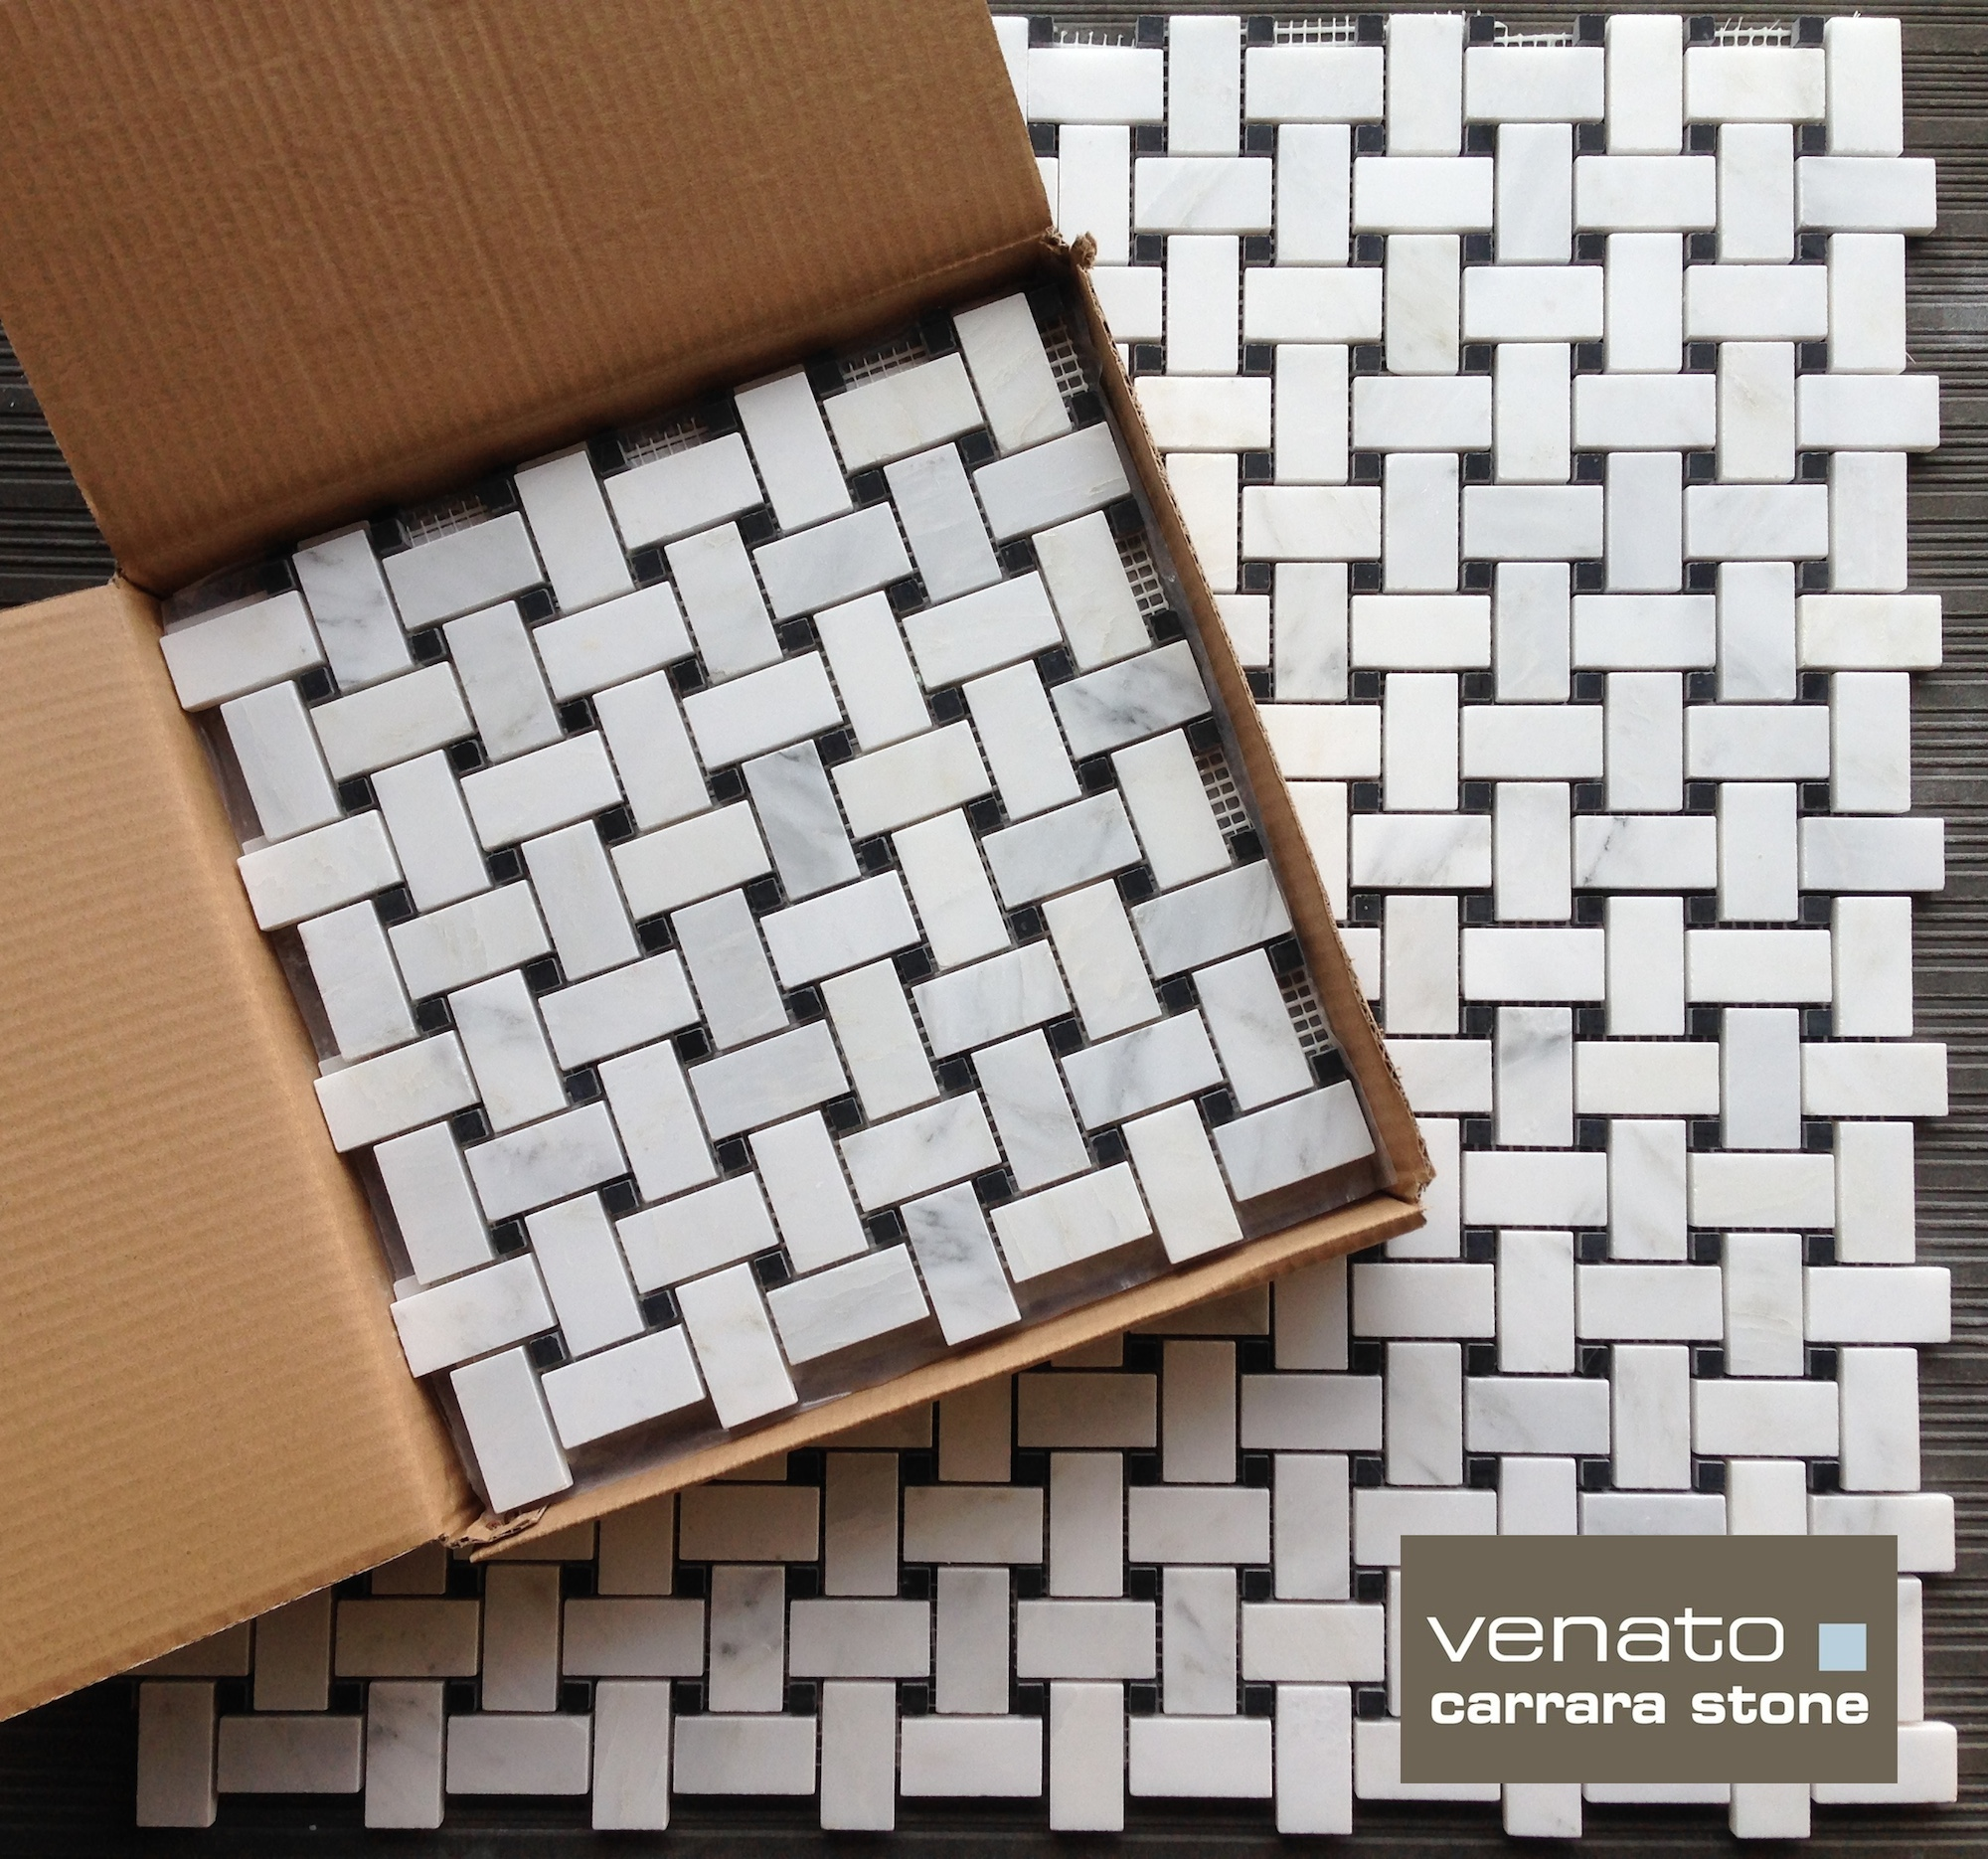 Carrara Venato Basketweave Honed Tile The Builder Depot Blog